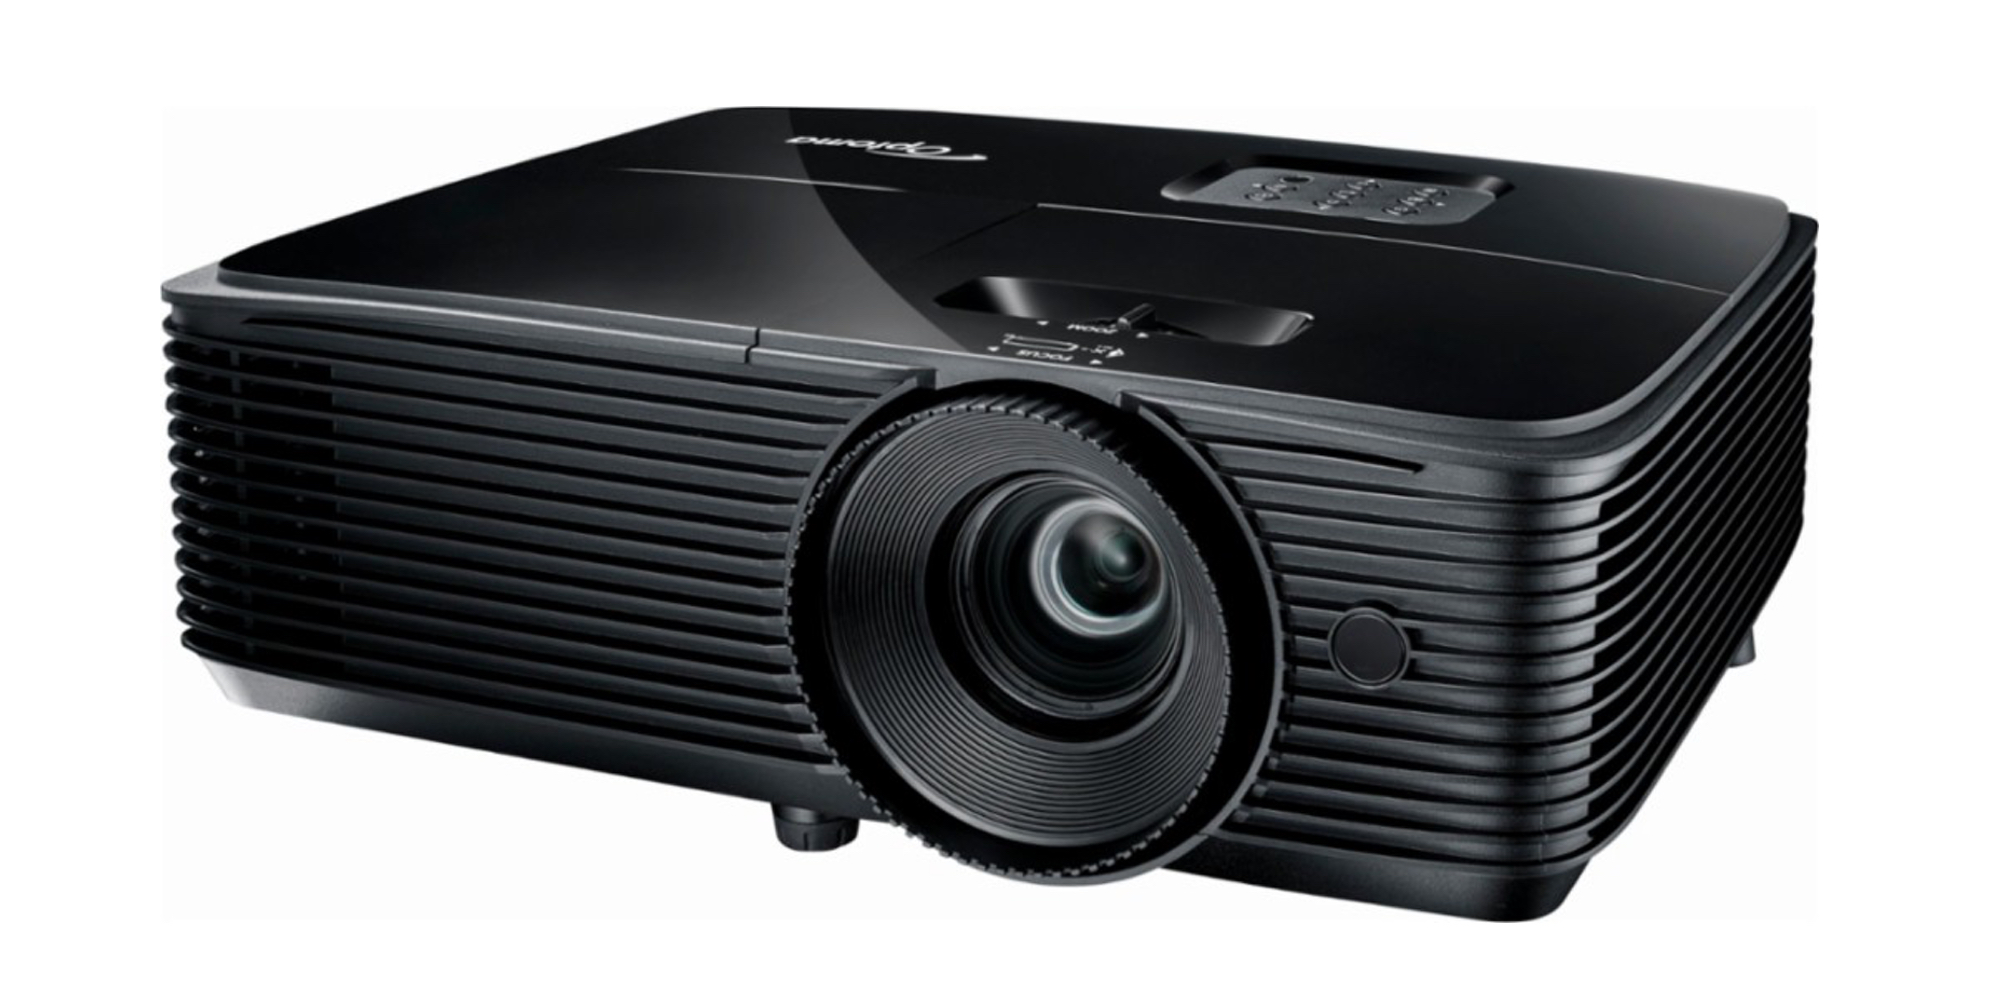 Optoma' 1080p Home Theater Projector Hits Of 359 Shipped Refurb Orig. 1 199 - 9to5toys